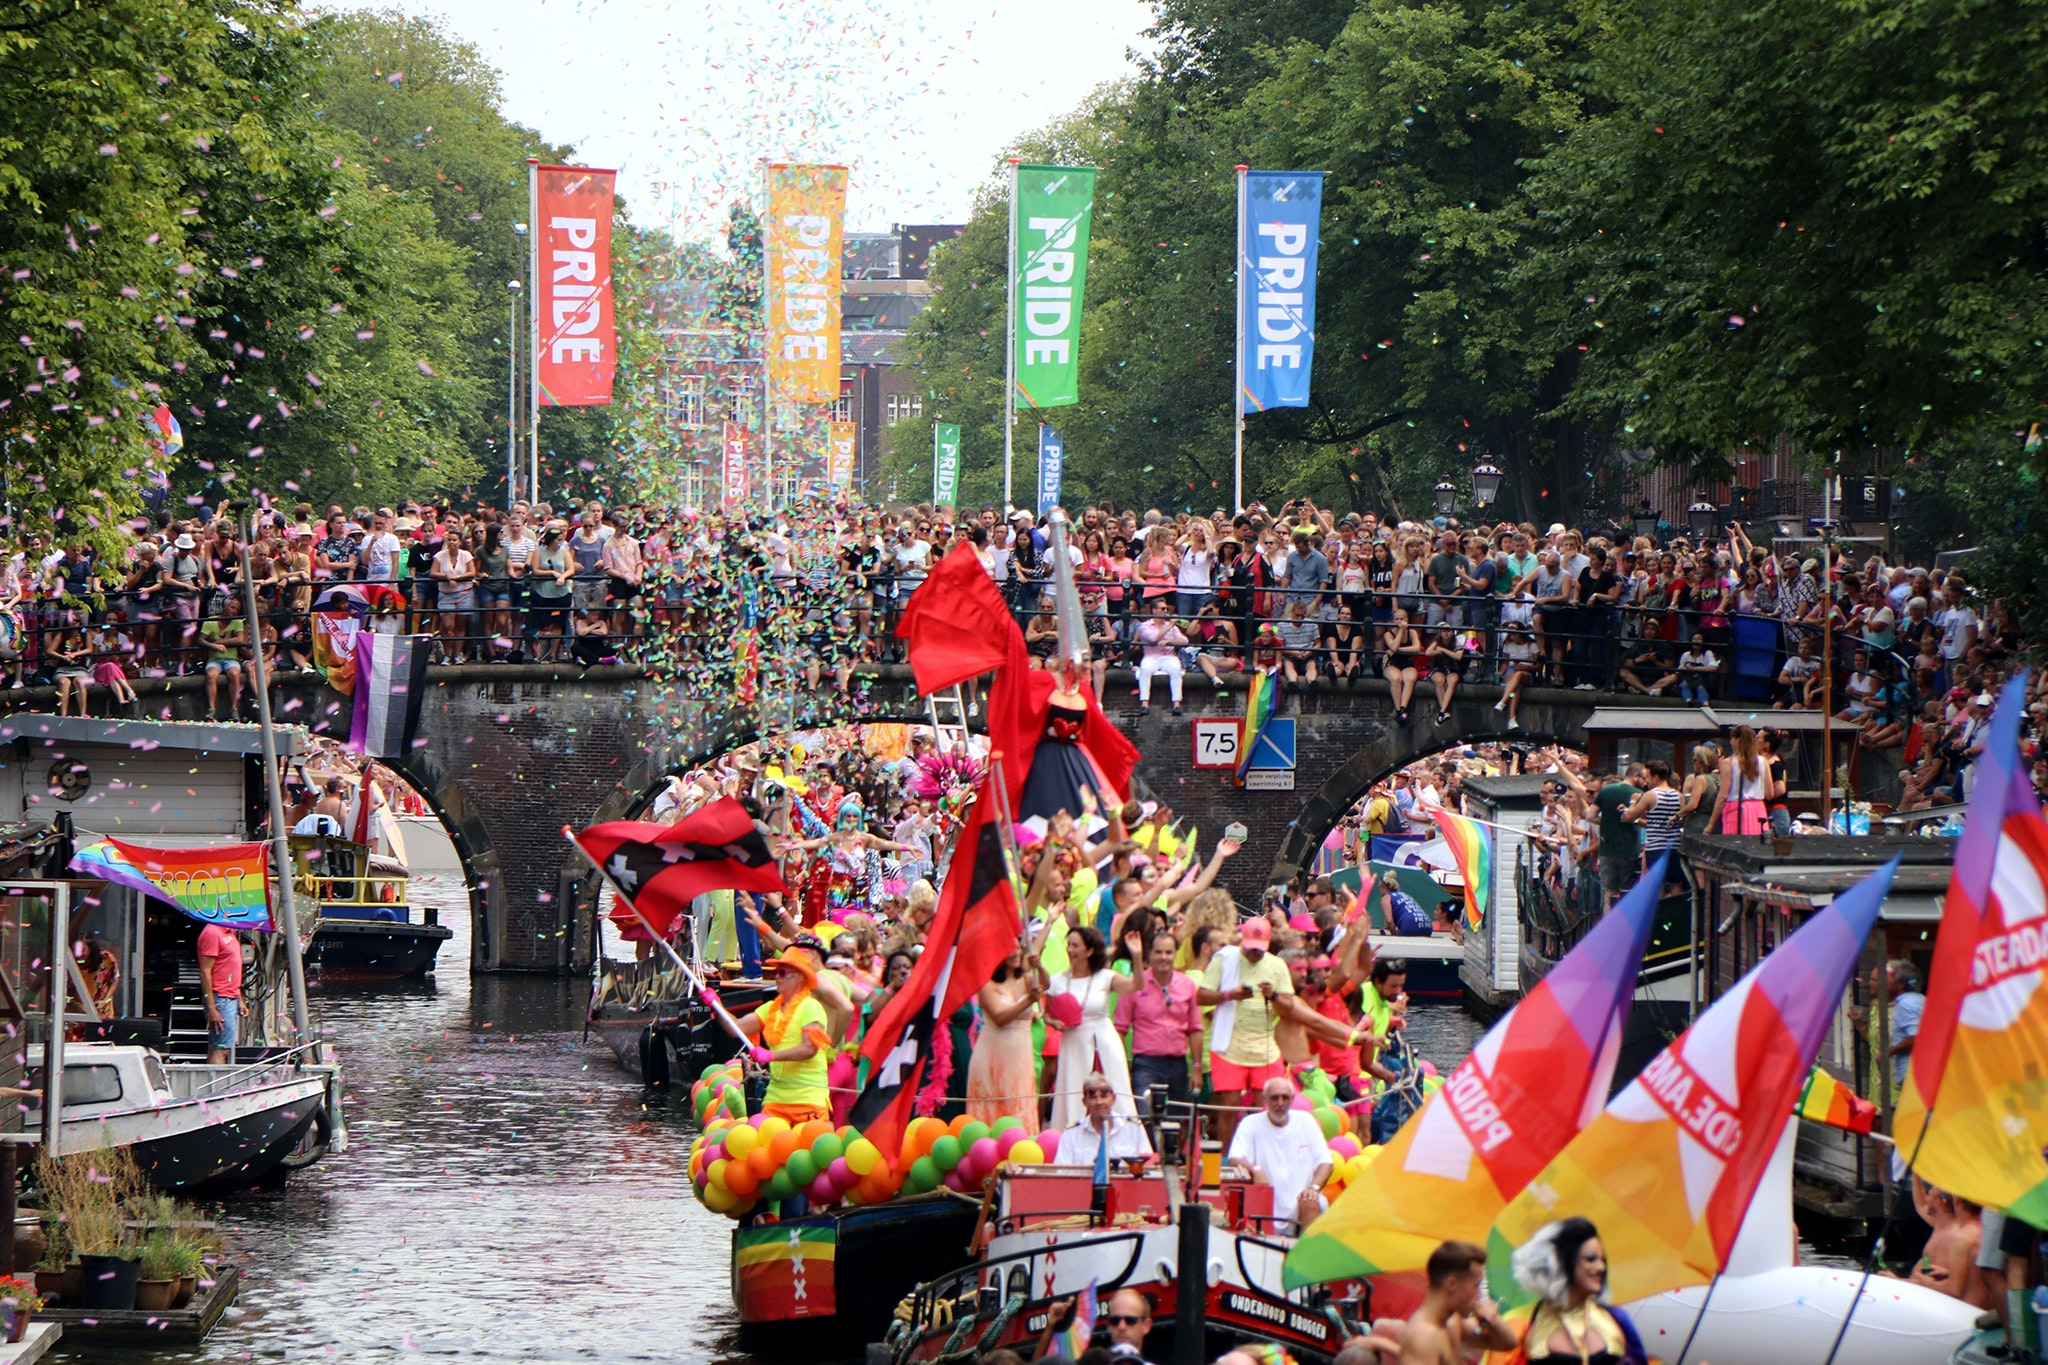 Boats float down Amsterdam's canals as part of the Amsterdam Canal Parade in 2018.